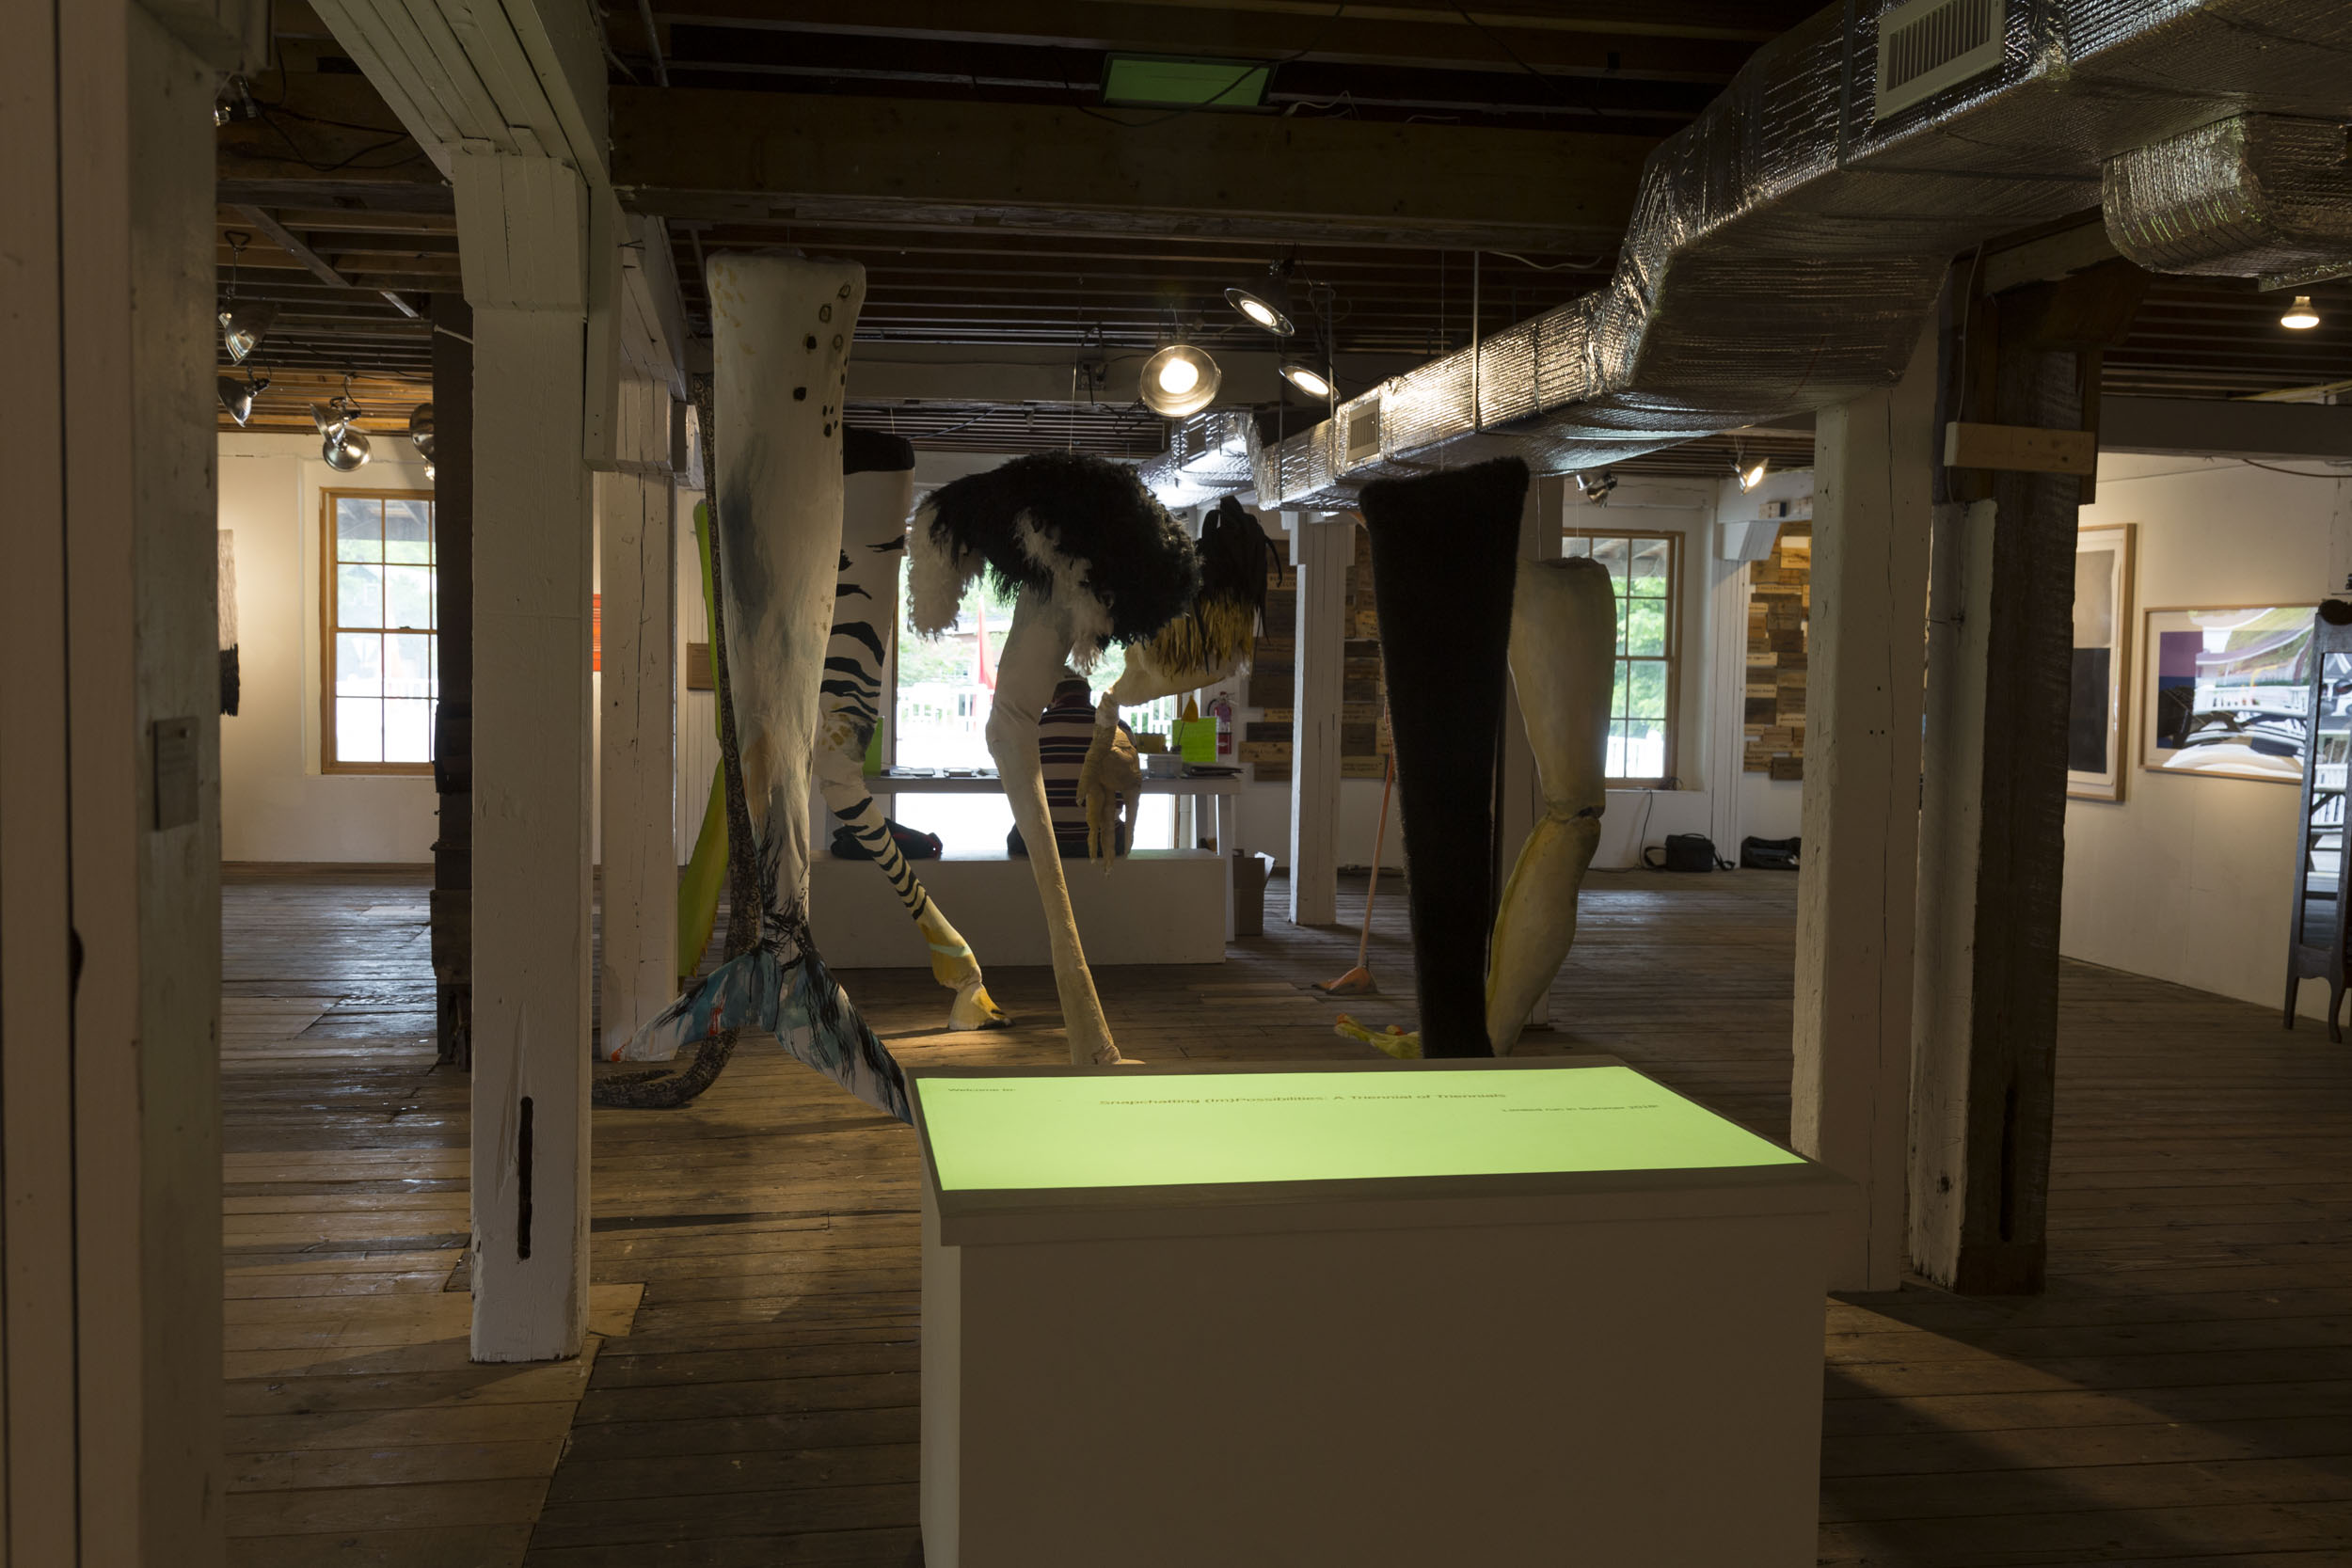 wassaic-project-exhibition-change-of-state-2018-06-10-13-28-14.jpg